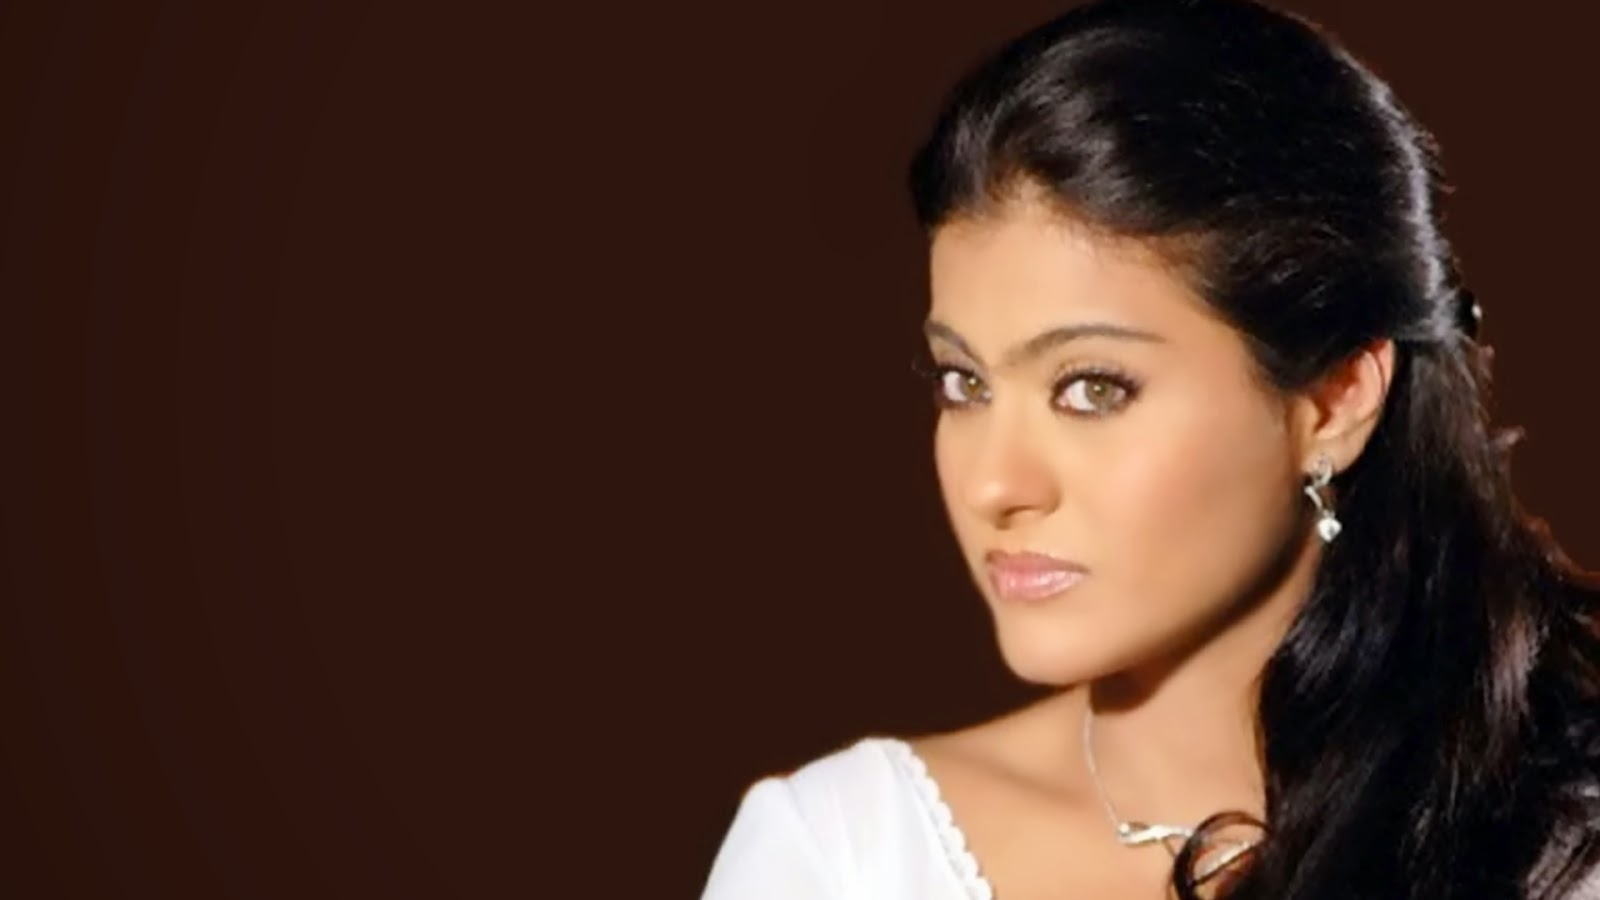 oringernal name kajol mukharjee birth of date 5 august 1957 birth place mumbai hair colour balck height 5 5 language hindi english